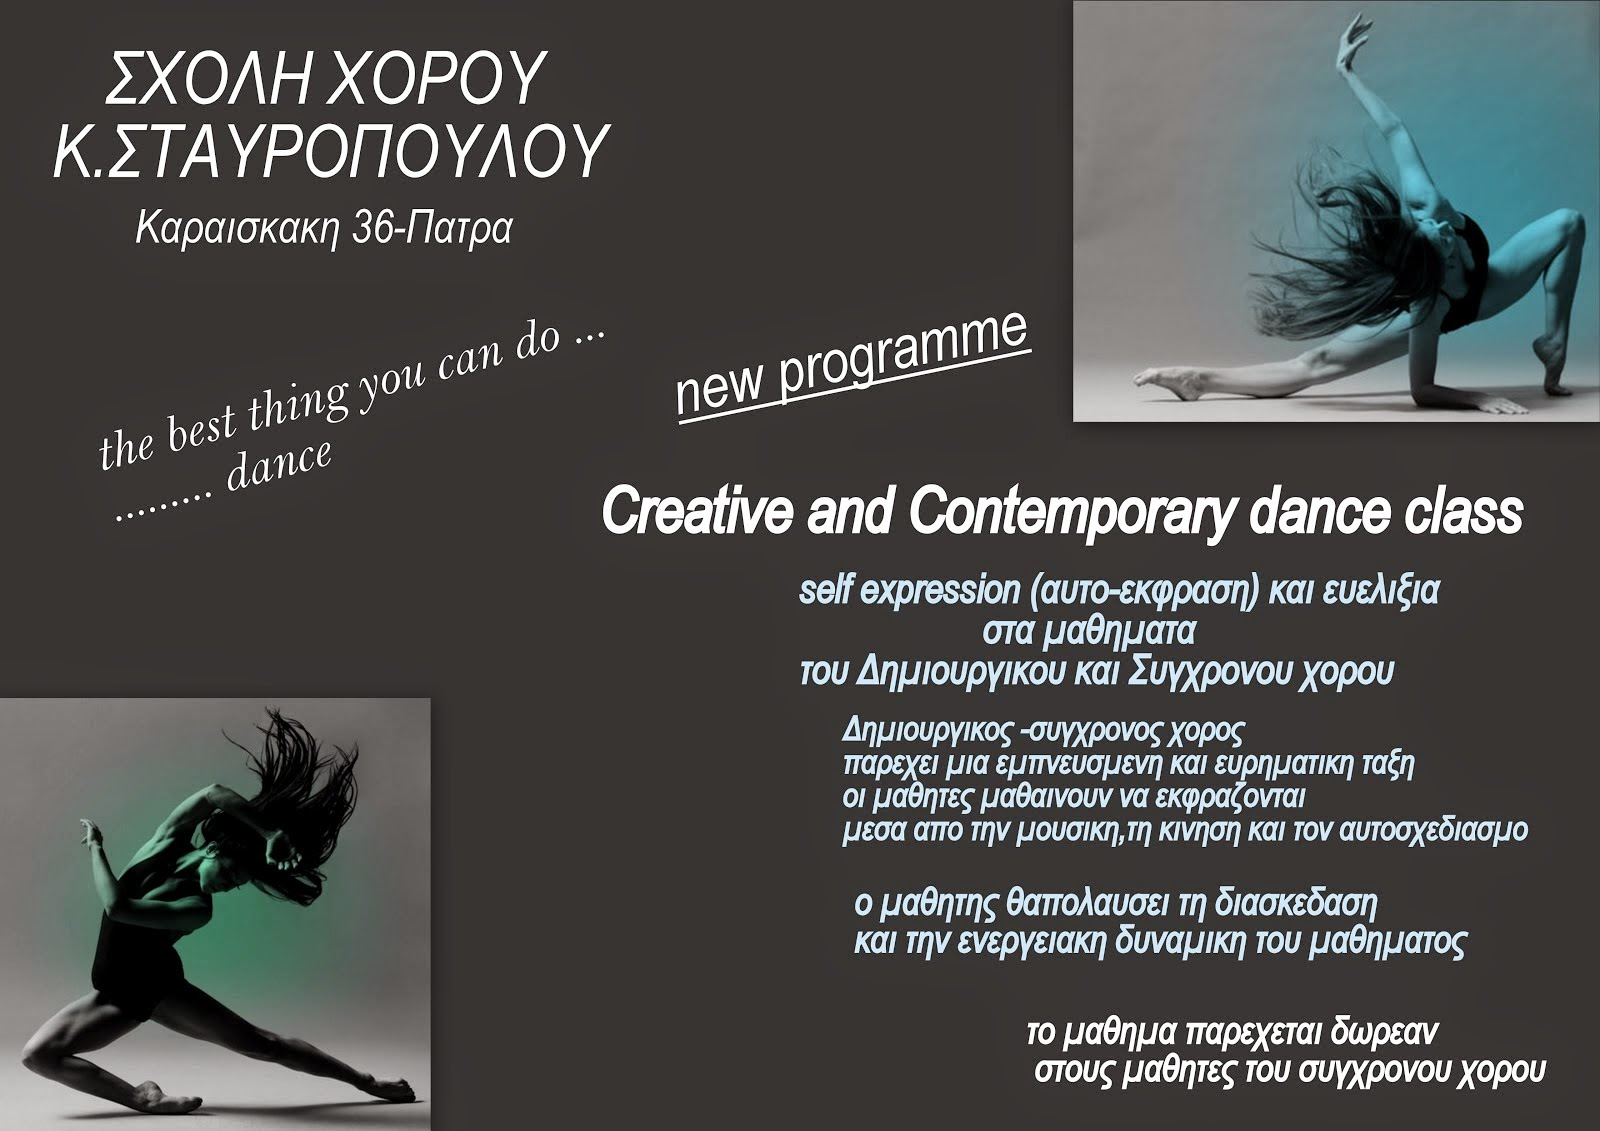 CREATIVE AND CONTEMPORARY DANCE CLASS